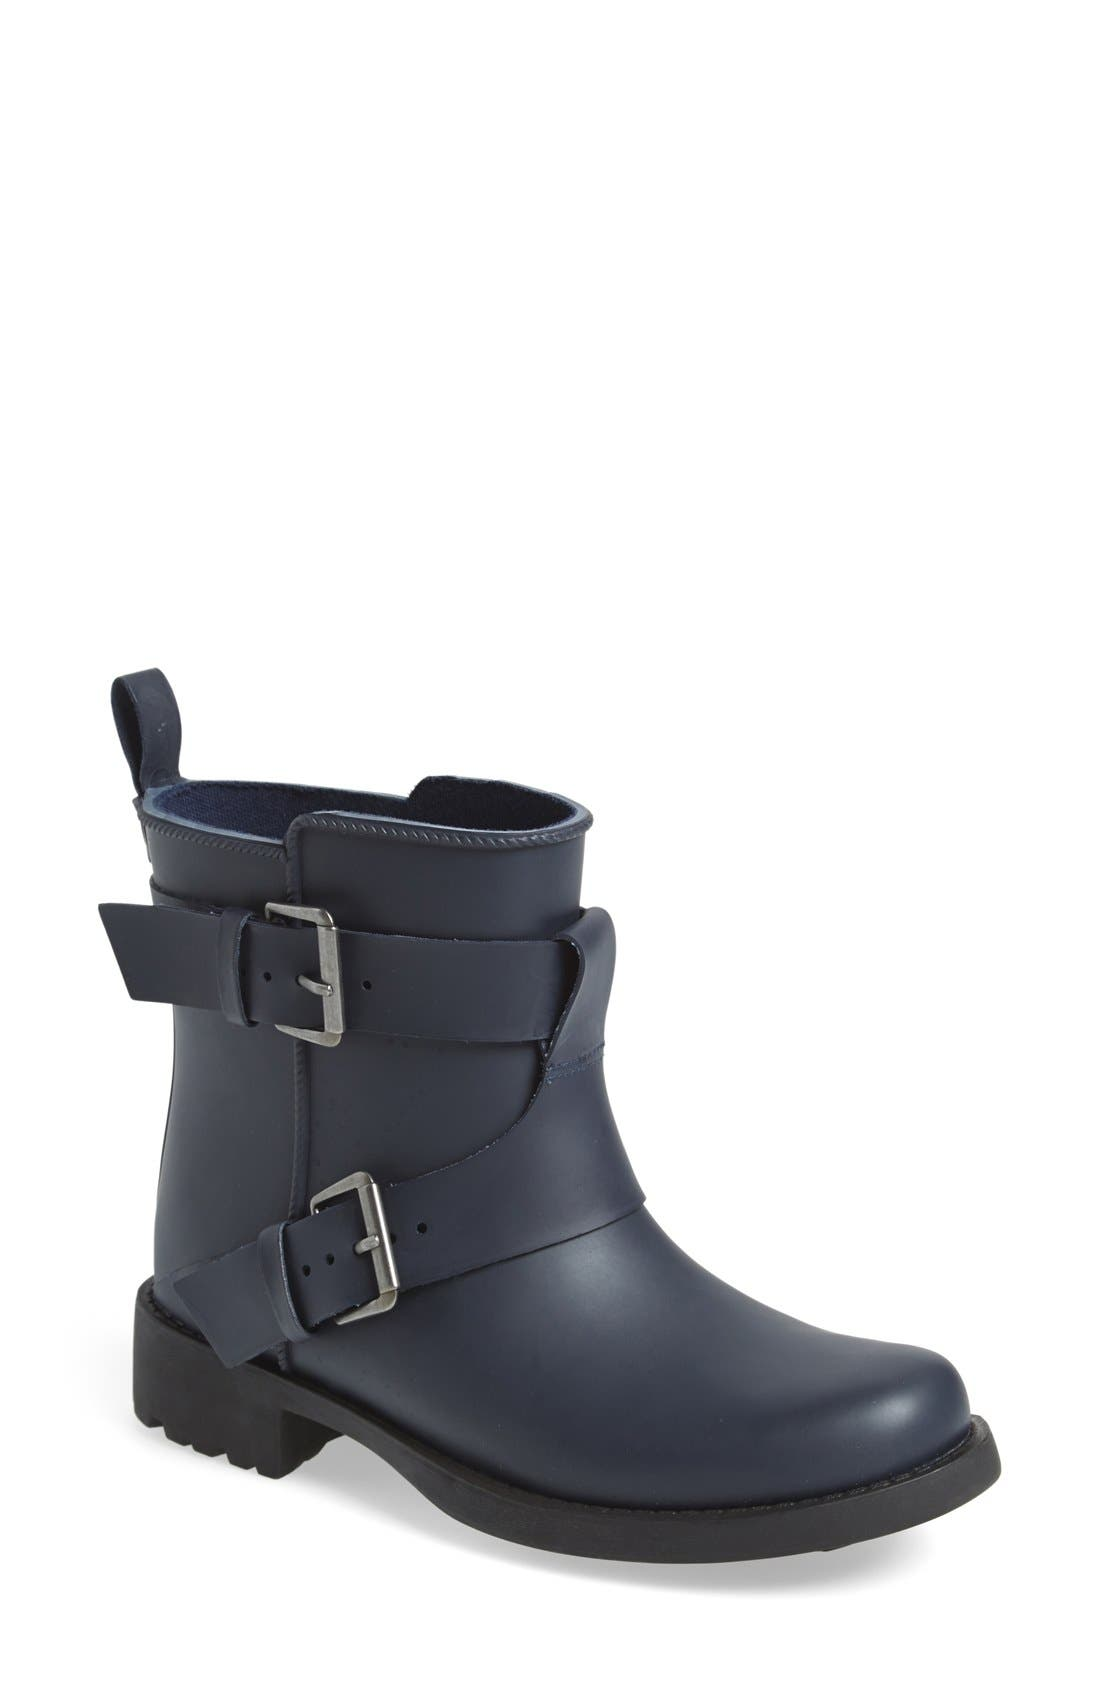 GENTLE SOULS 'Best Fun' Moto Rain Boot